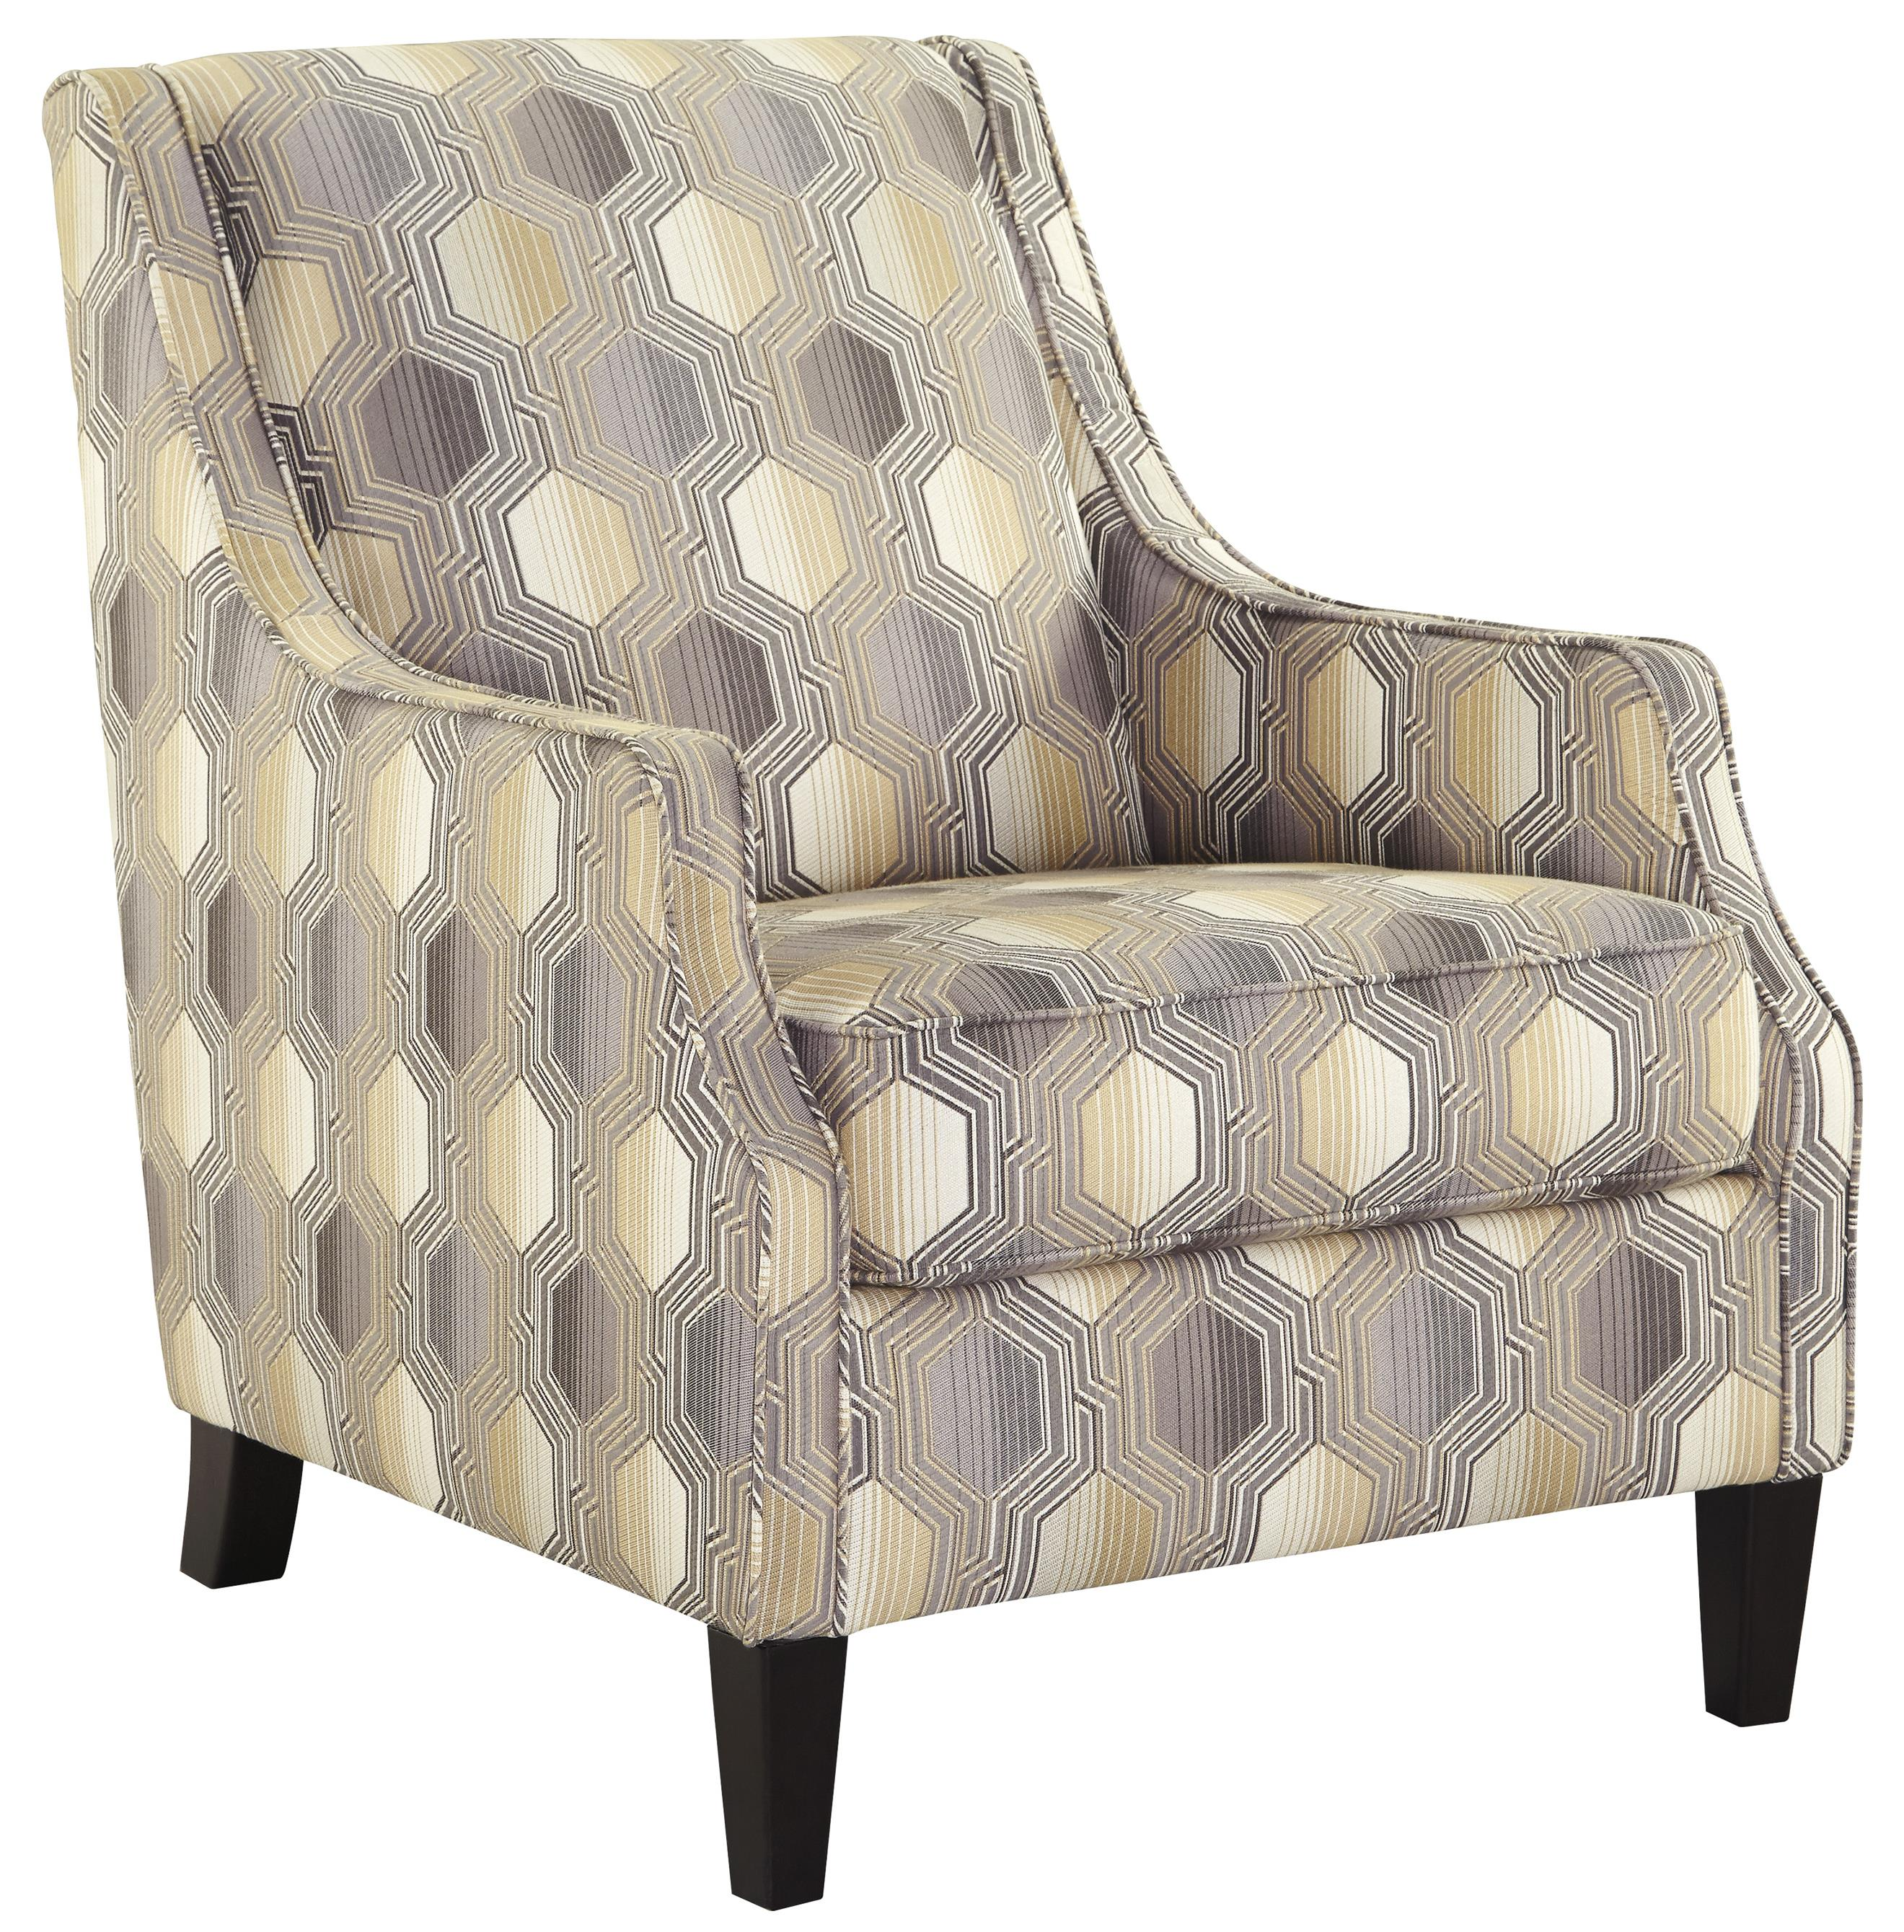 Benchcraft Brielyn Accent Chair - Item Number: 6140221